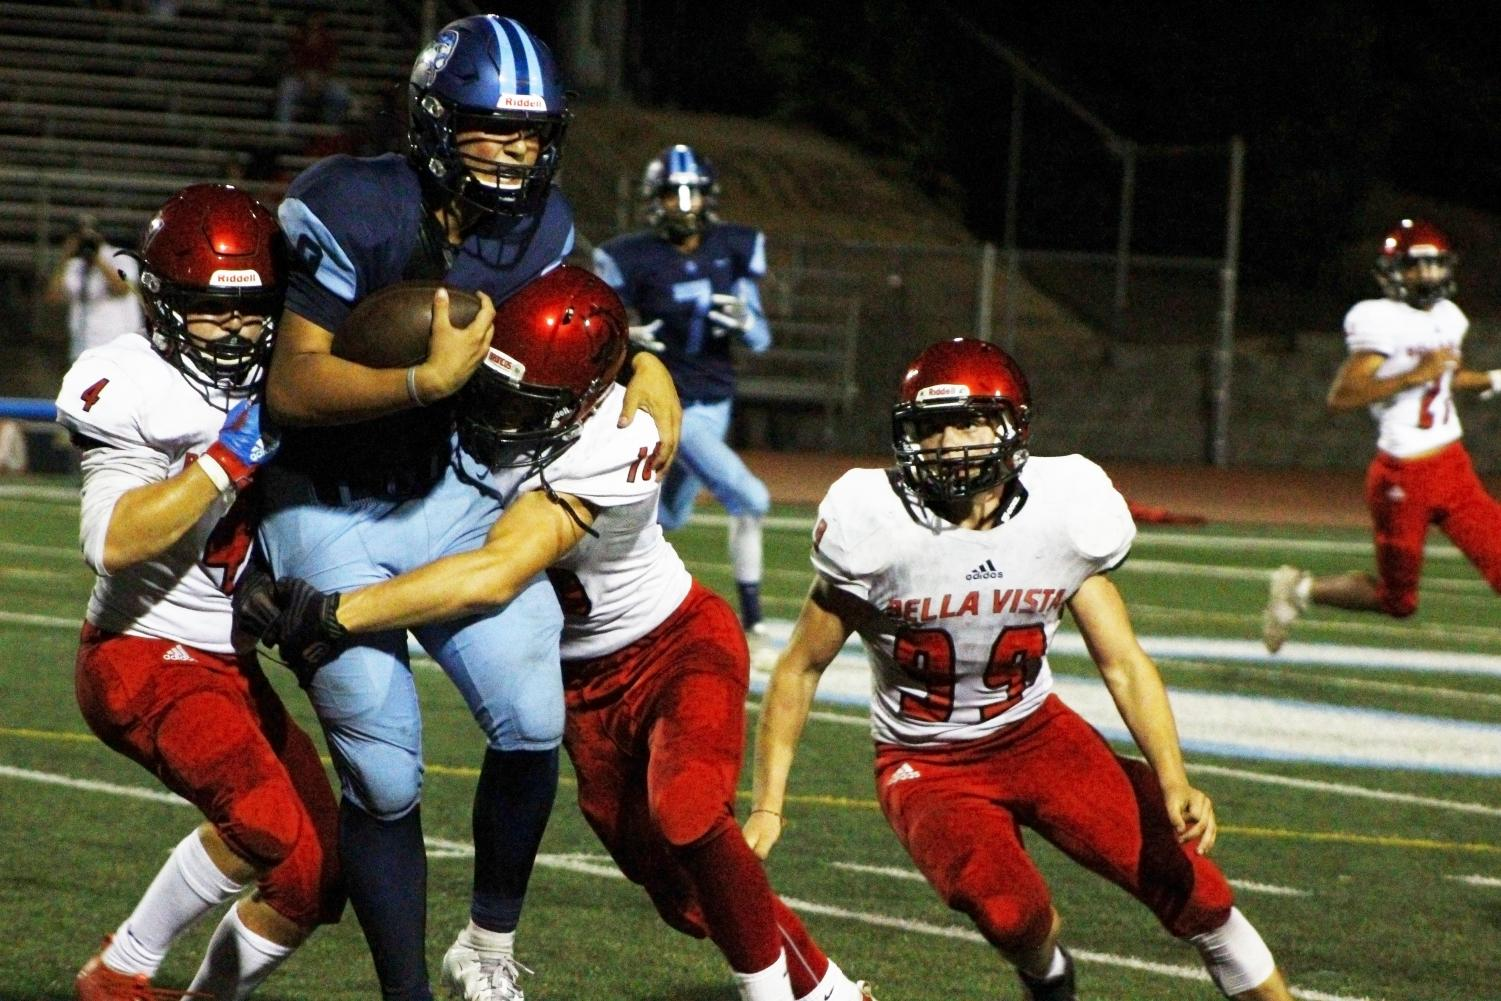 Hayden Abbruzzese withstanding the power of opposing football players.